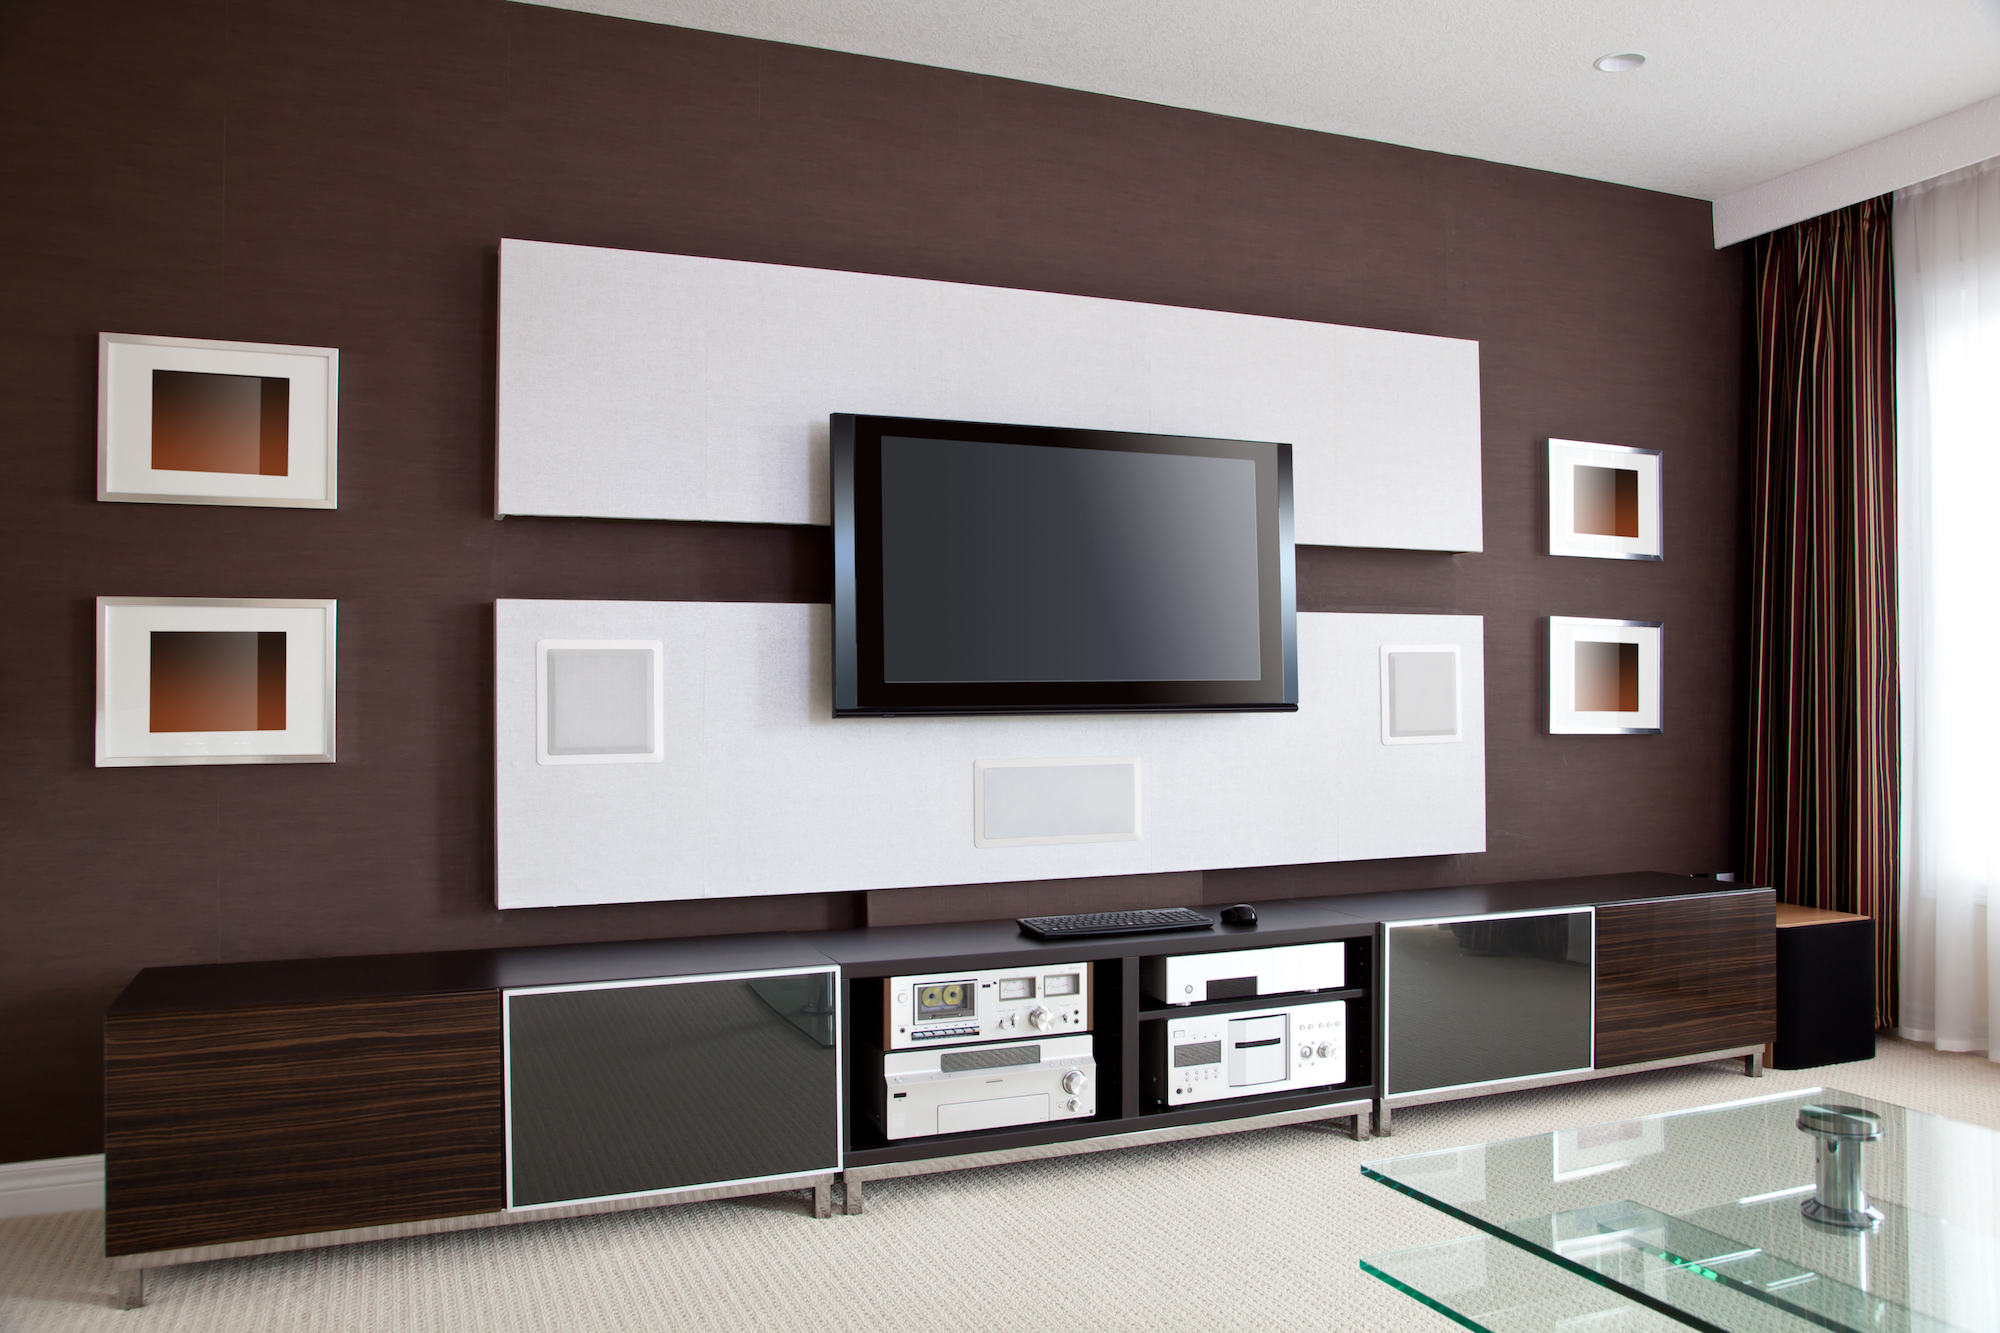 Room with TV mounted on the wall above a cabinet containing stereo equipment.